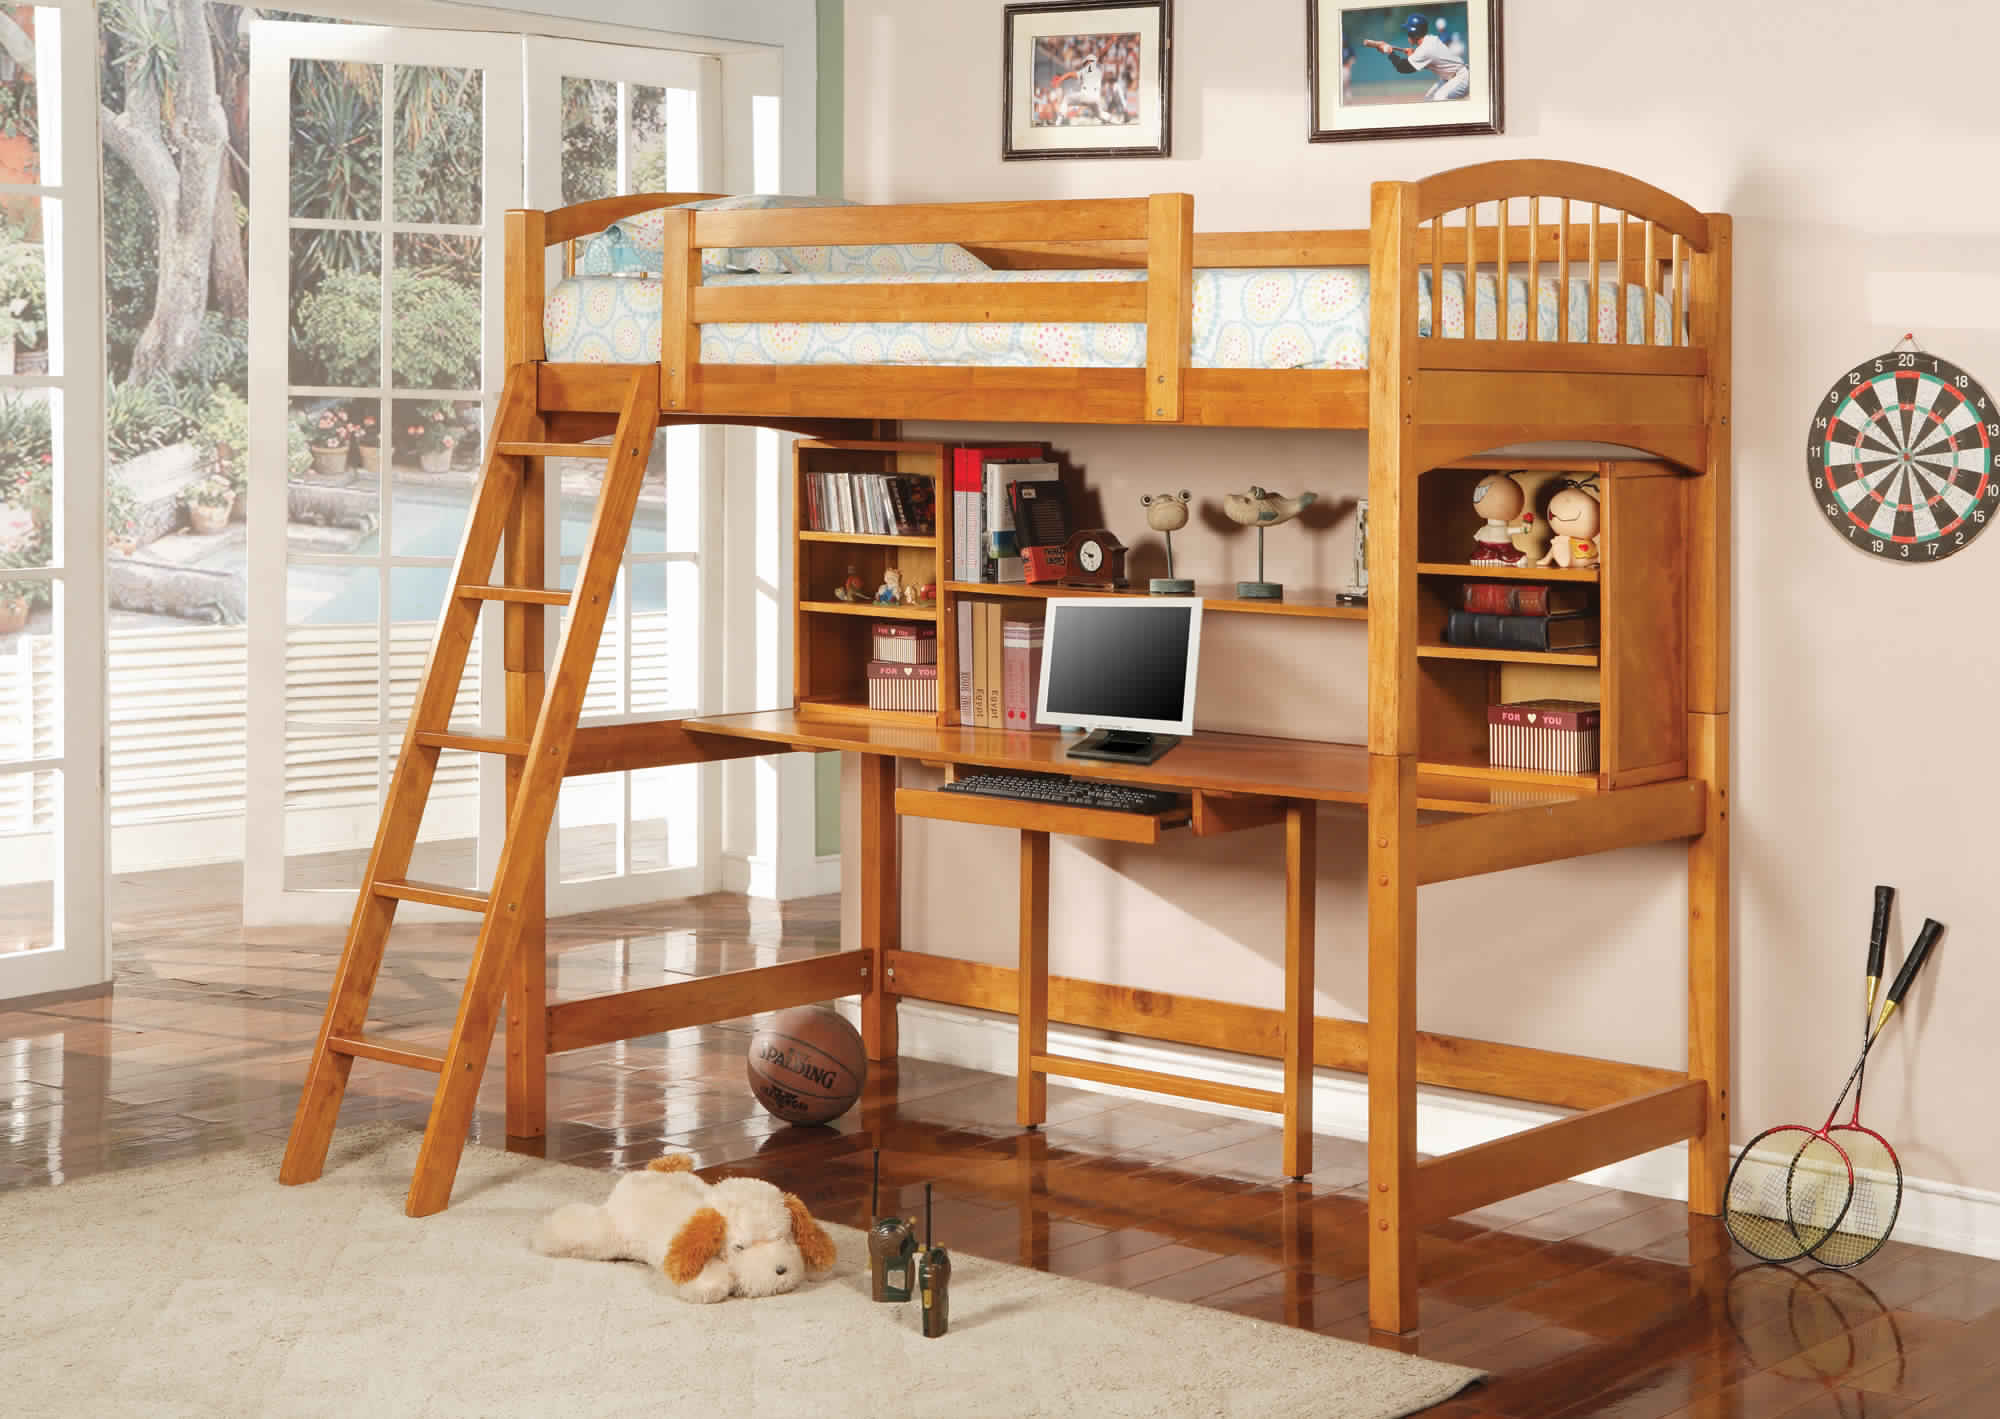 Bunk Bed with Desk for children room